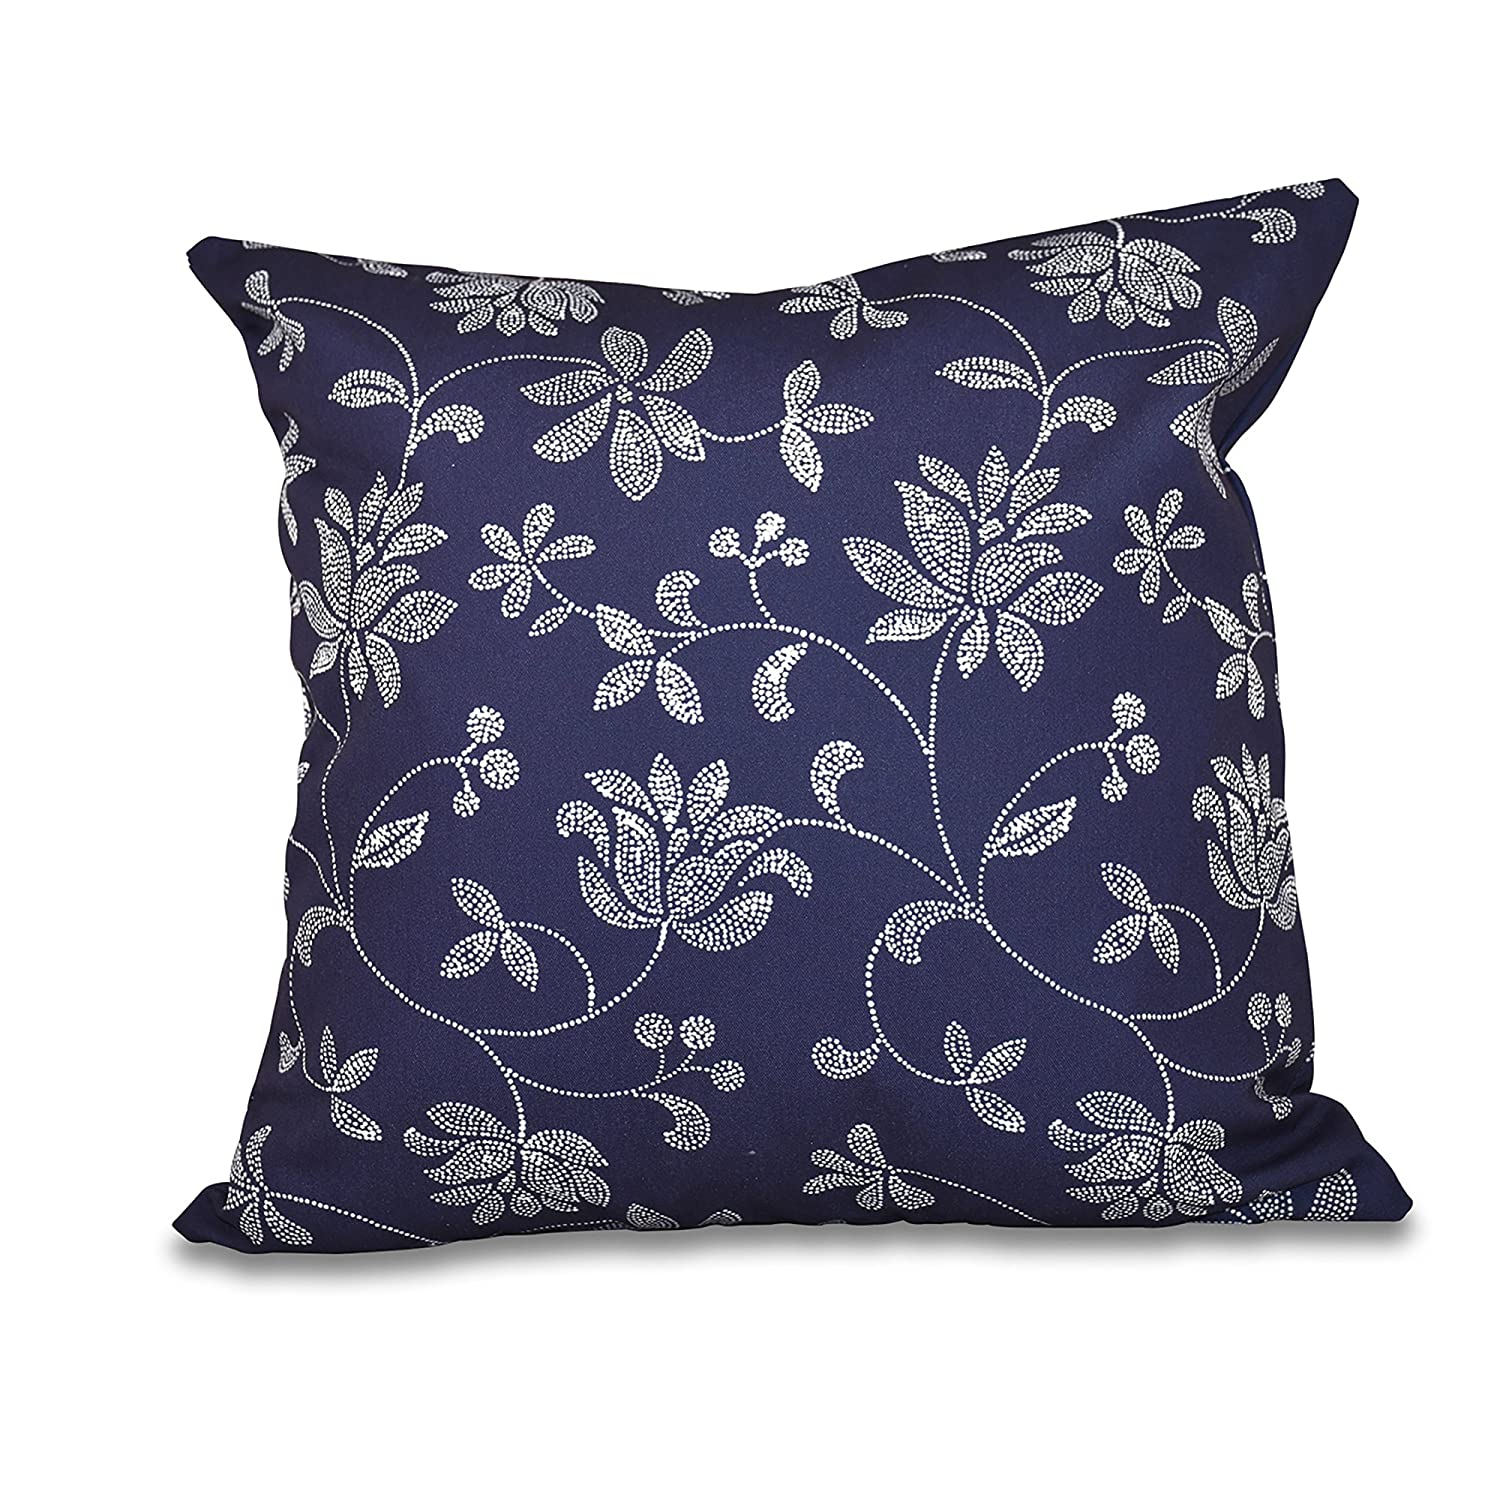 Navy Blue E by design 20 x 20-inch Traditional Floral Floral Print Pillow